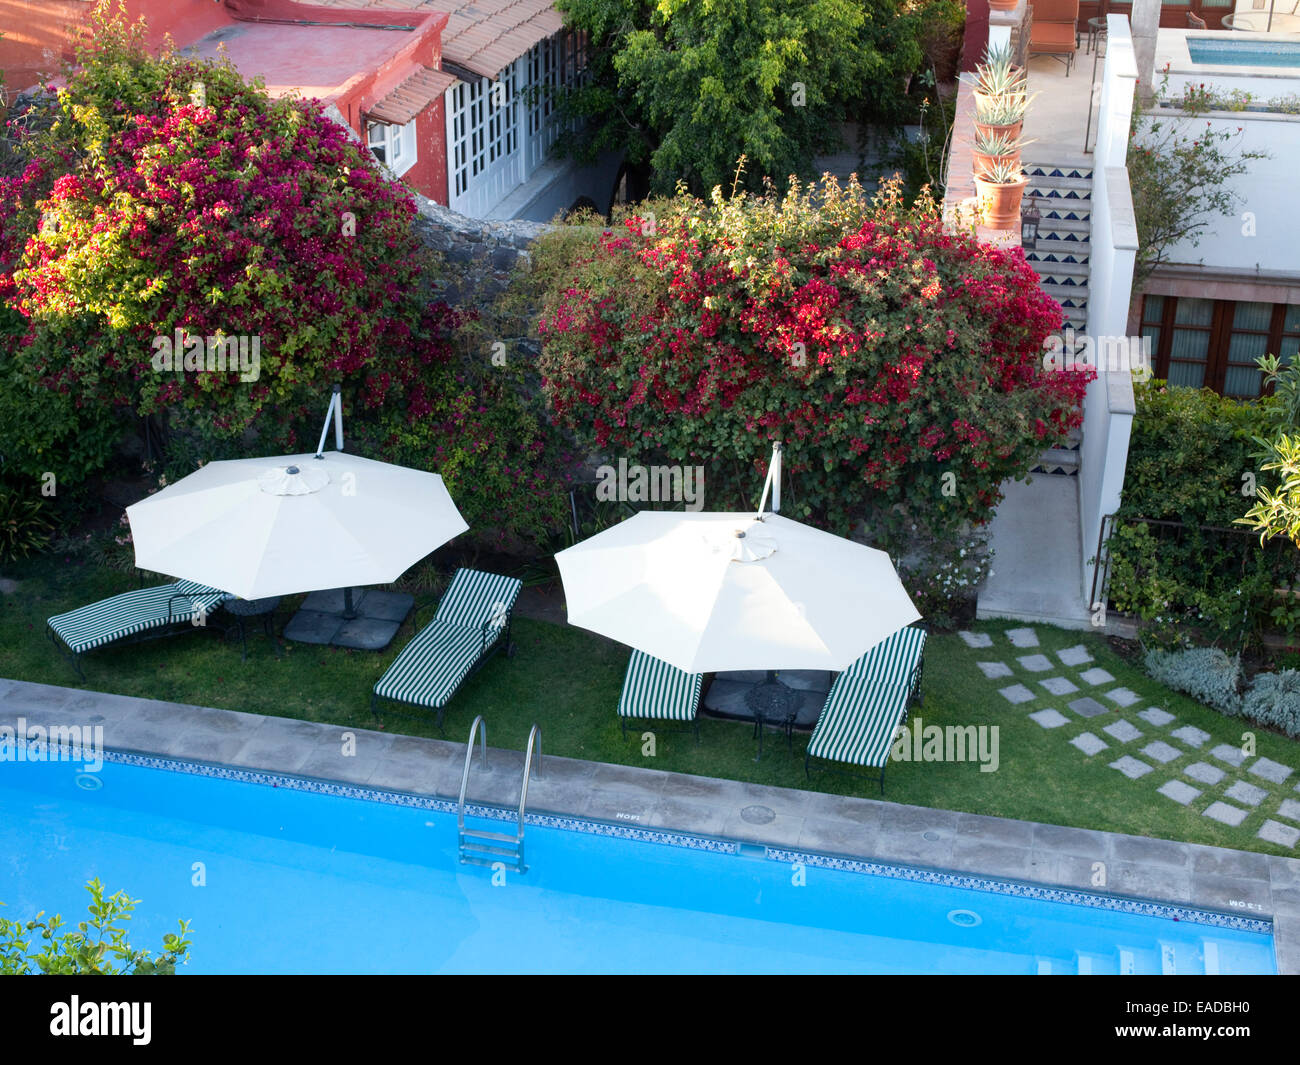 Hotel swimming pool and garden with umbrellas and chaise lounge chairs - Stock Image